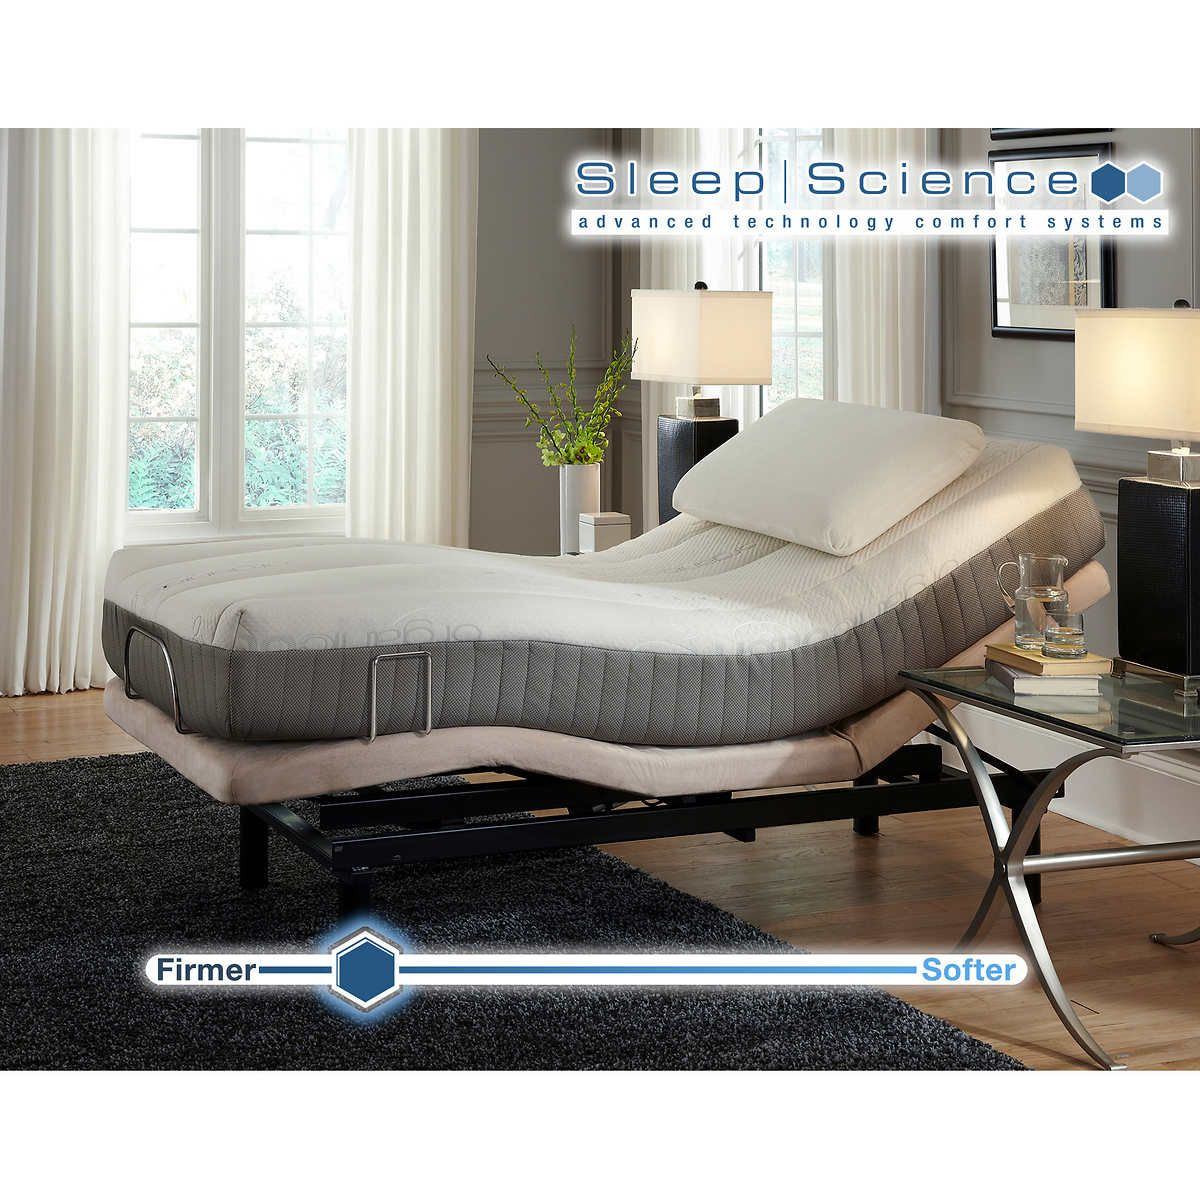 Pin by Tricia Stewart on Caretaker Adjustable beds